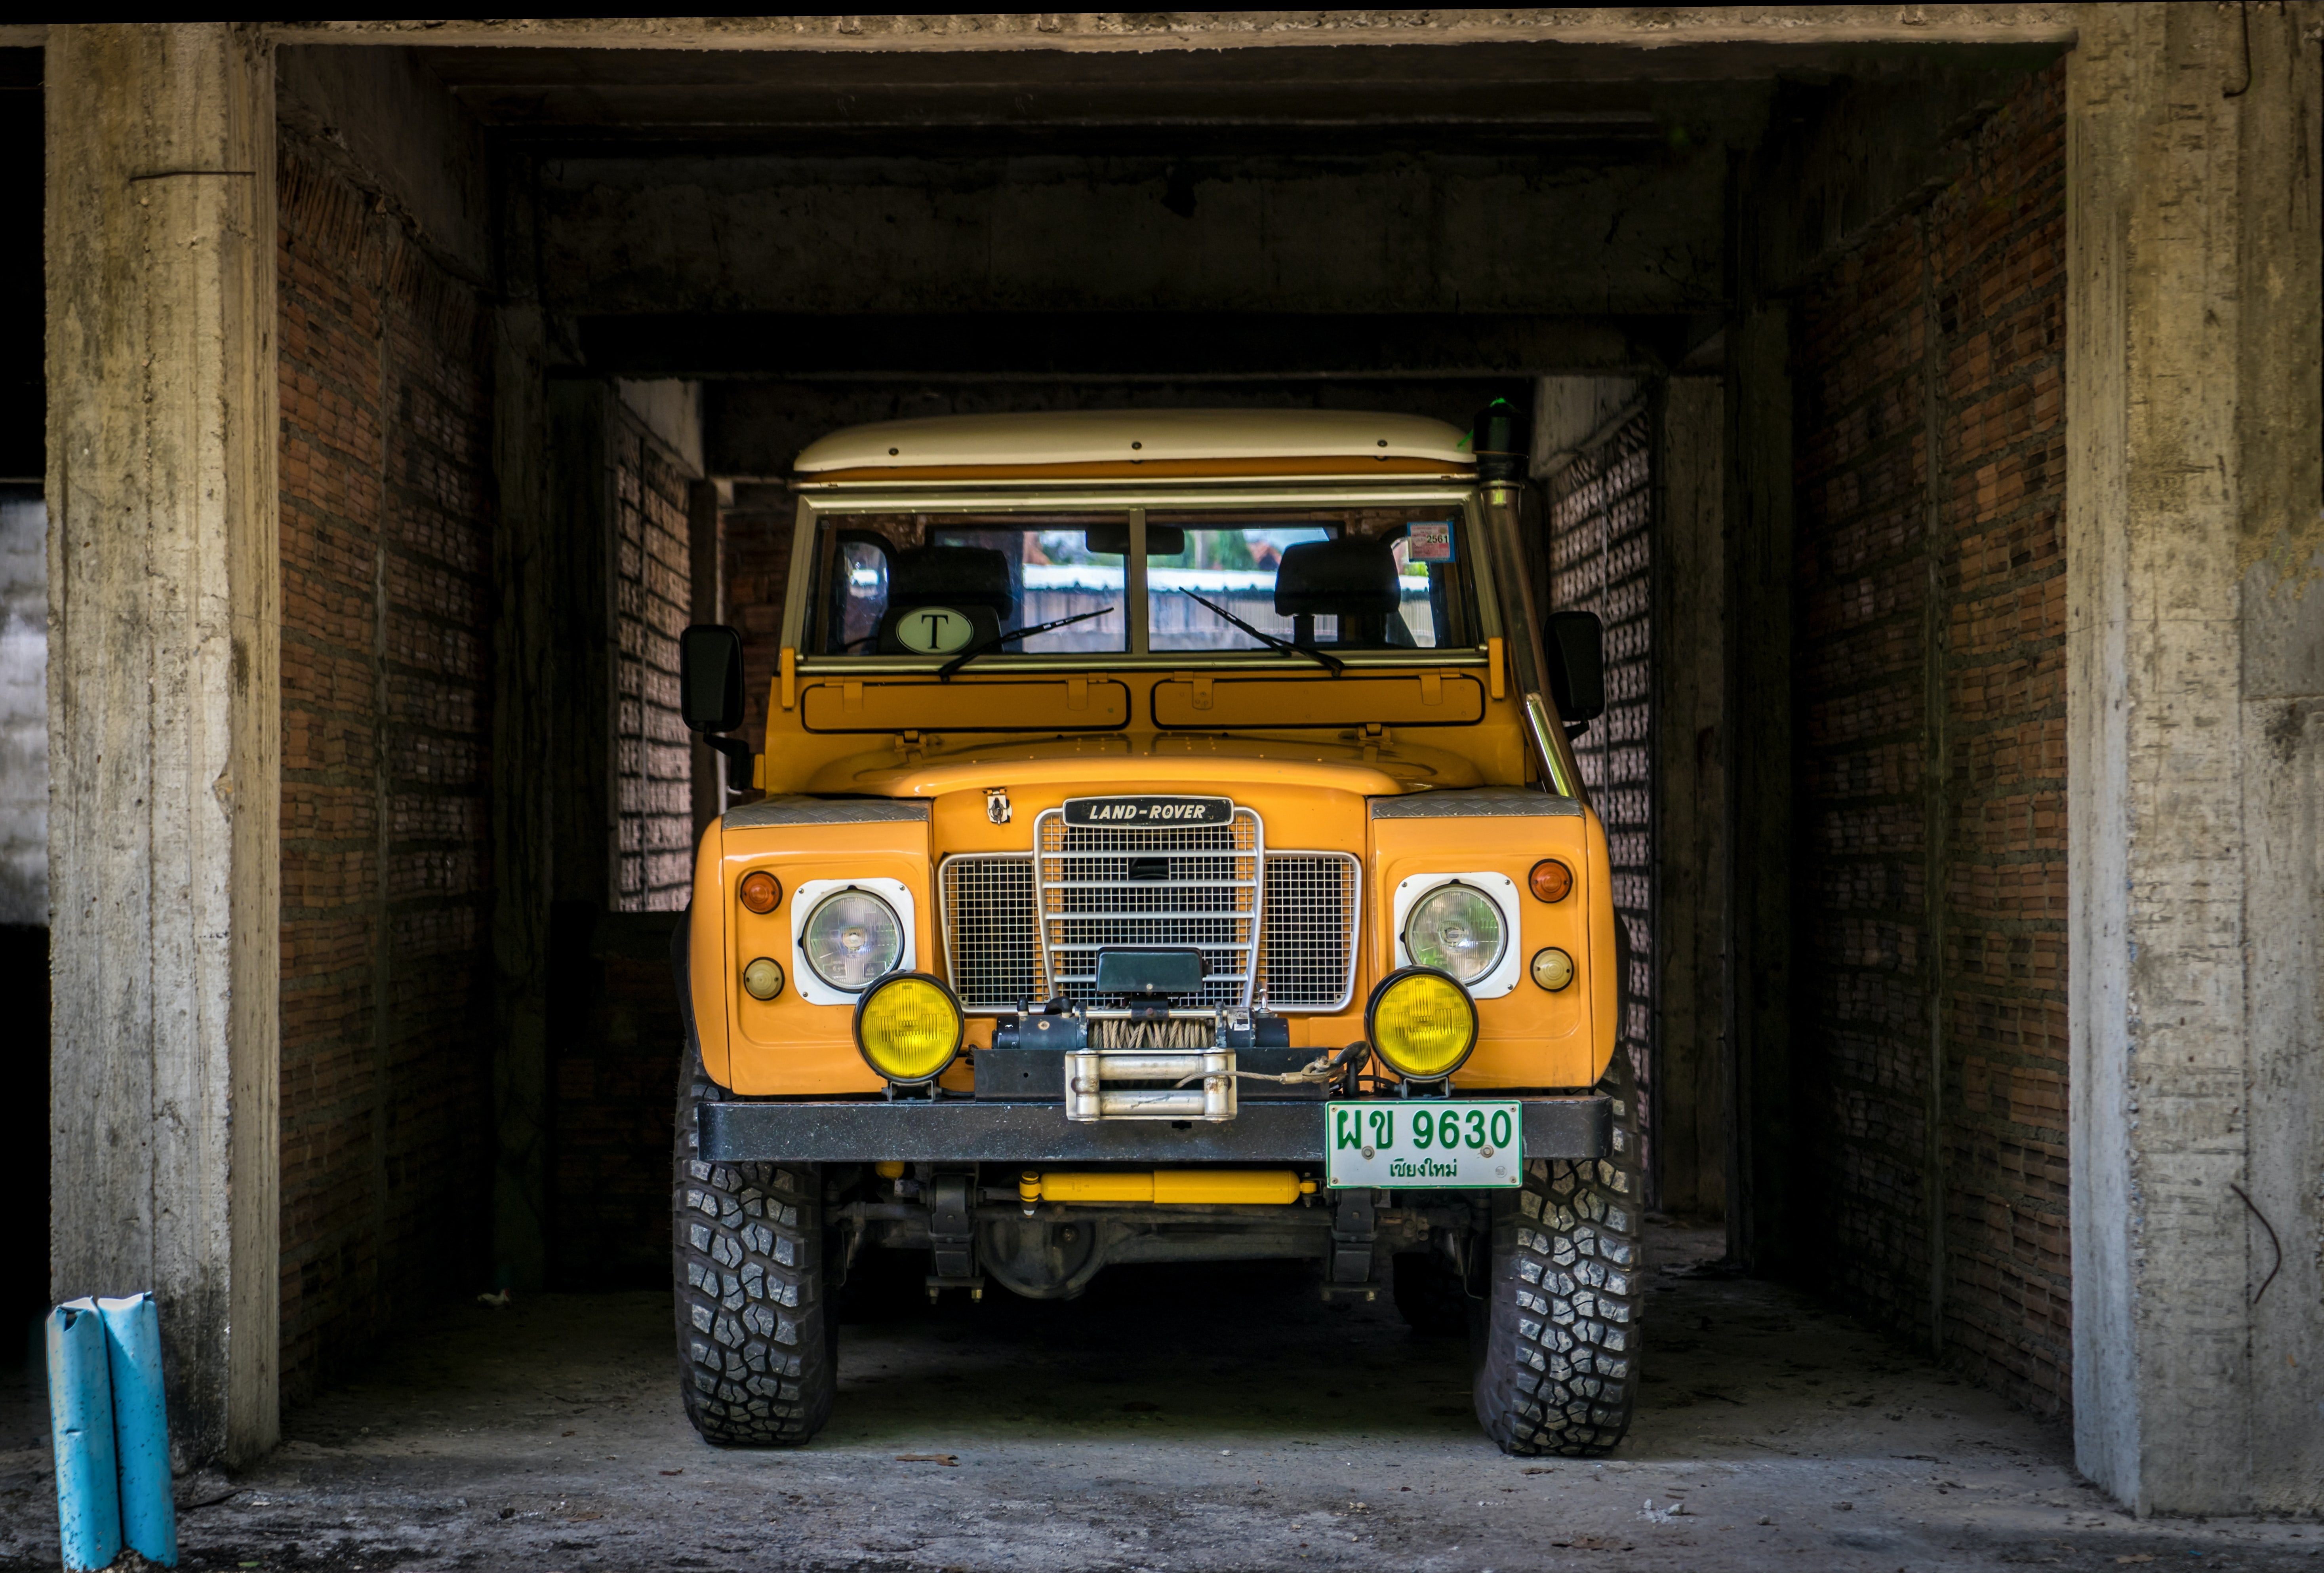 yellow vehicle parked inside building